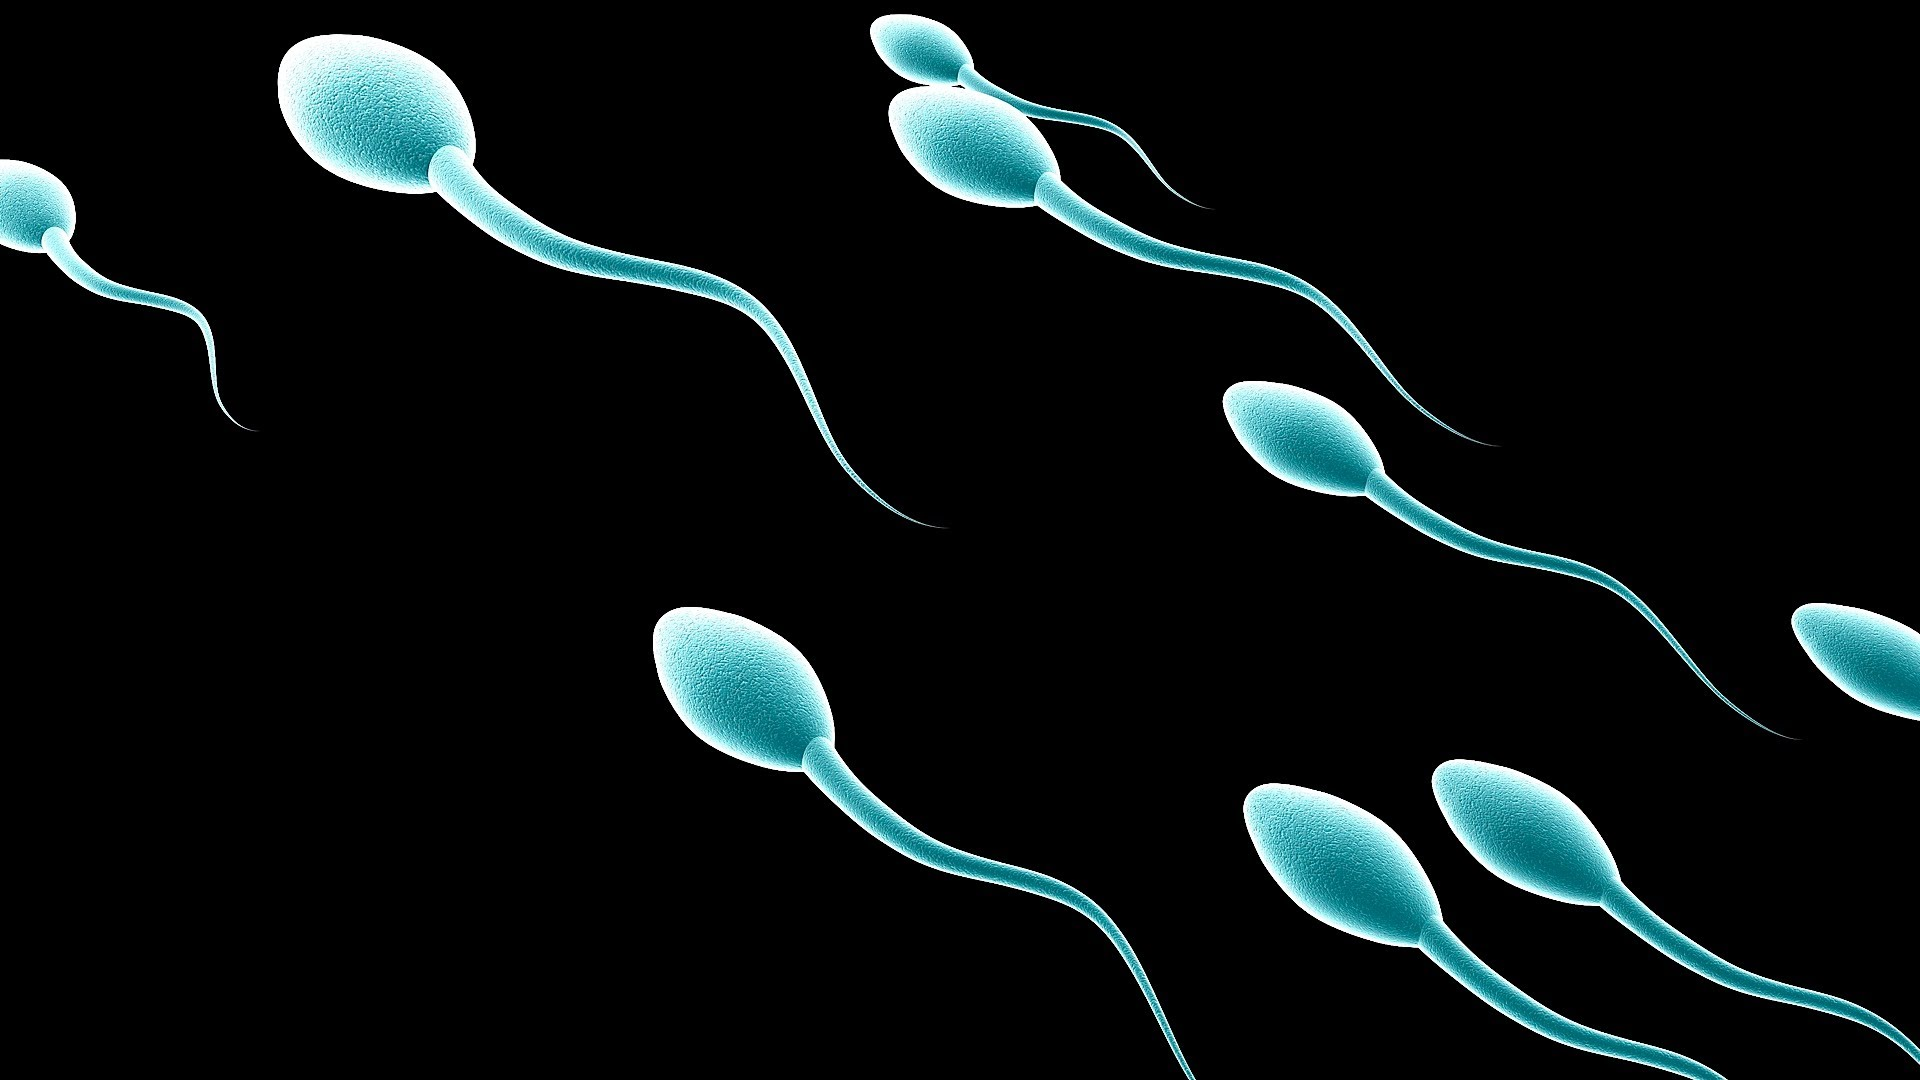 Some Important health benefits of sperm